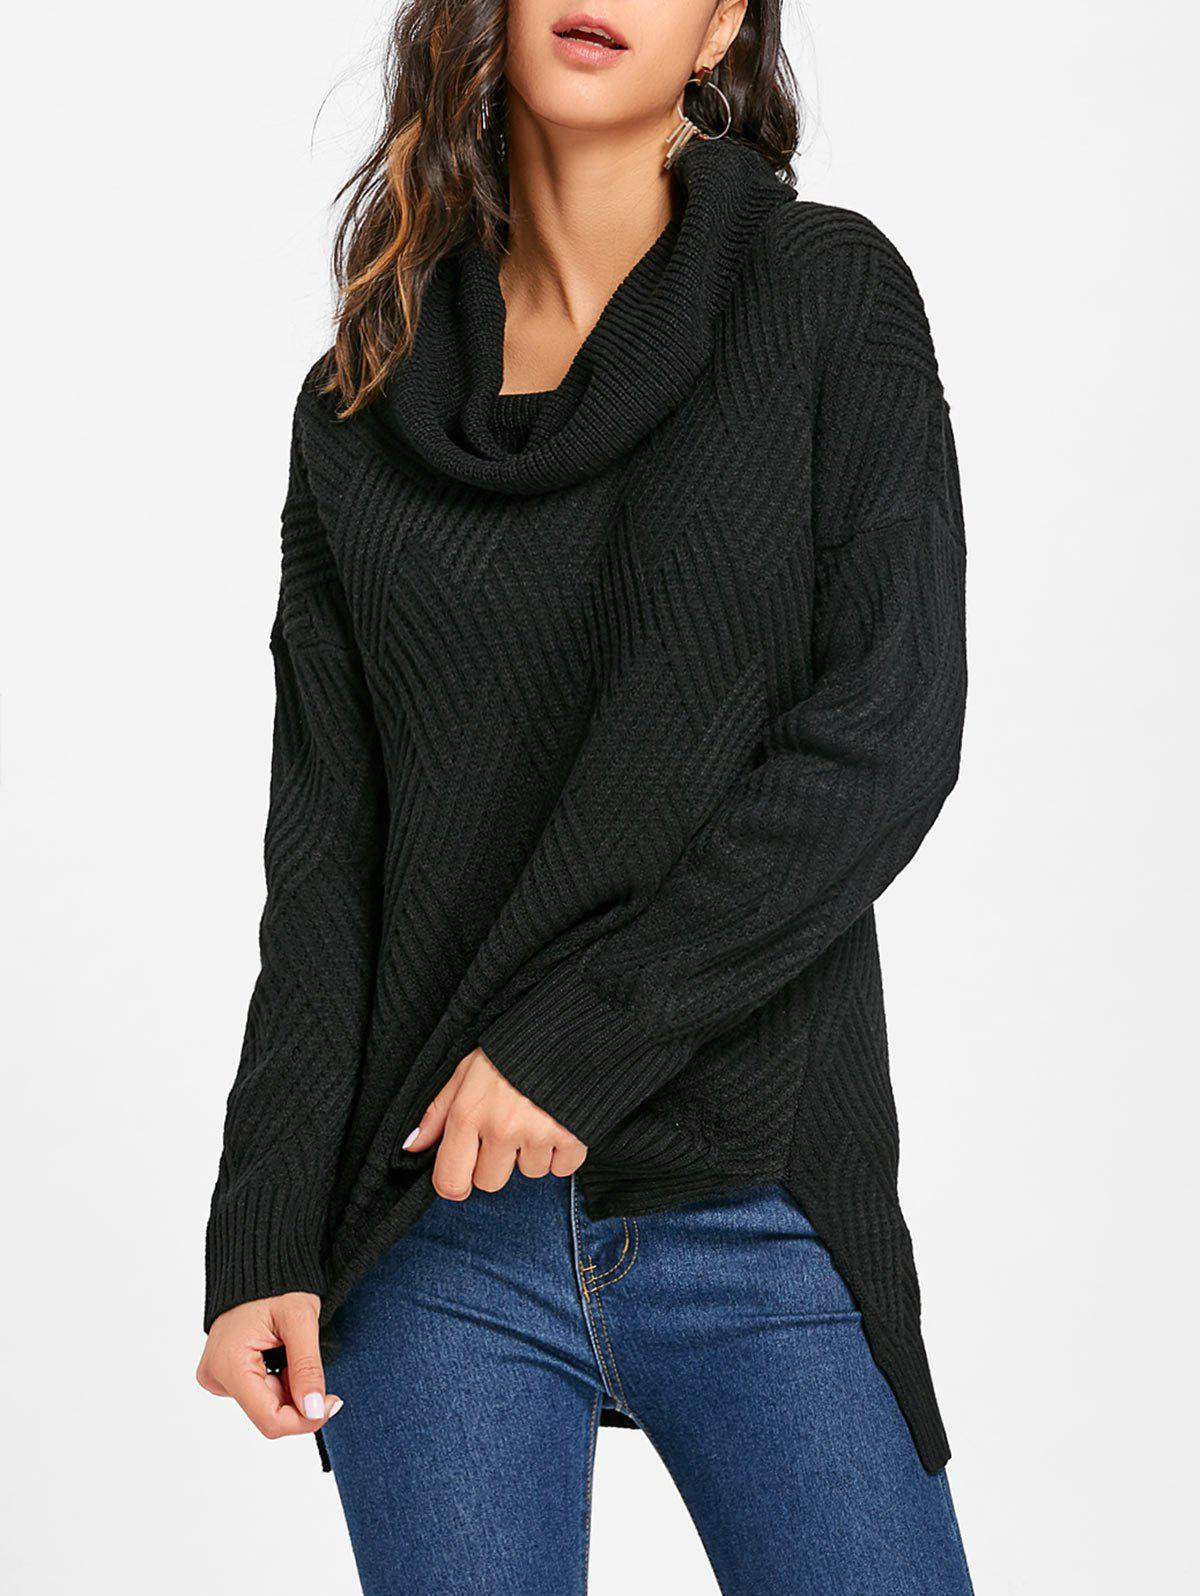 Latest Side Slit Cowl Neck Knitted Sweater